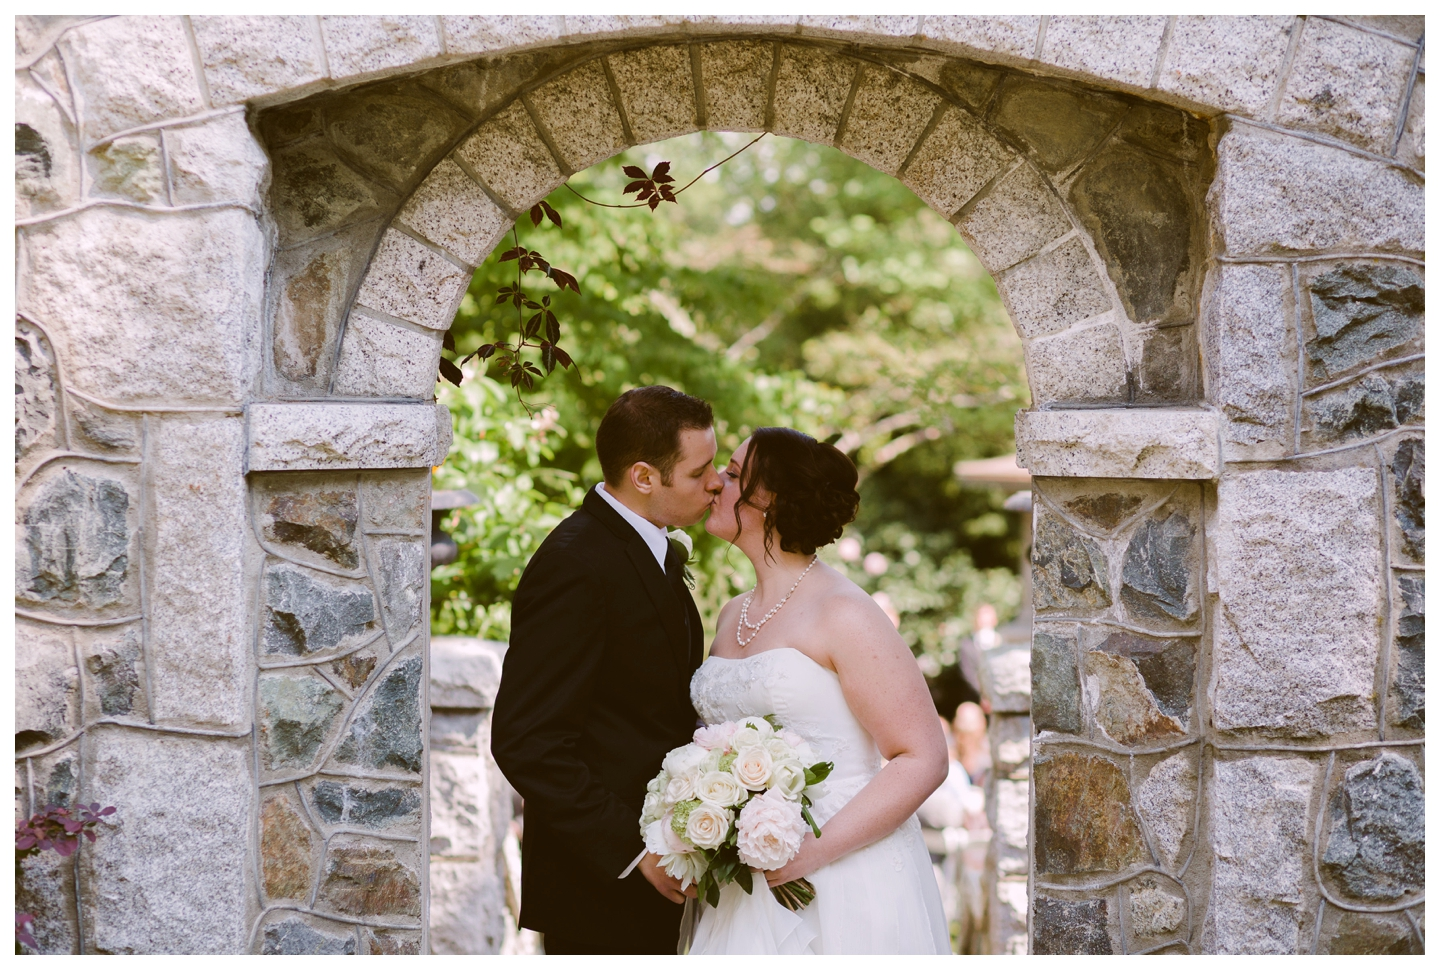 Bride and Groom kissing under stone arch